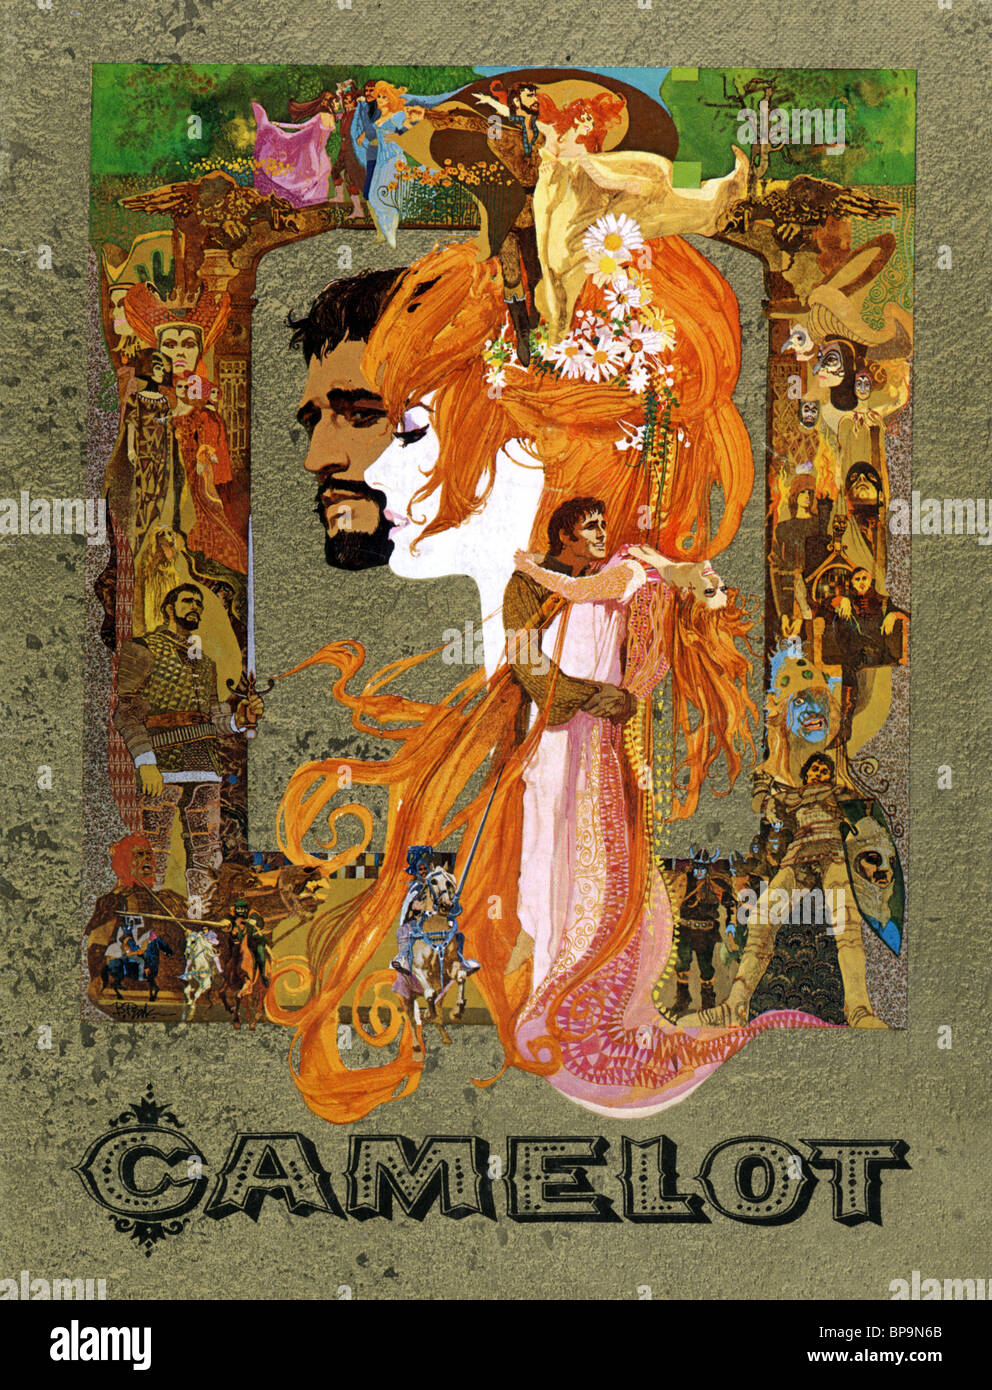 movie poster camelot 1967 stock photo royalty free image